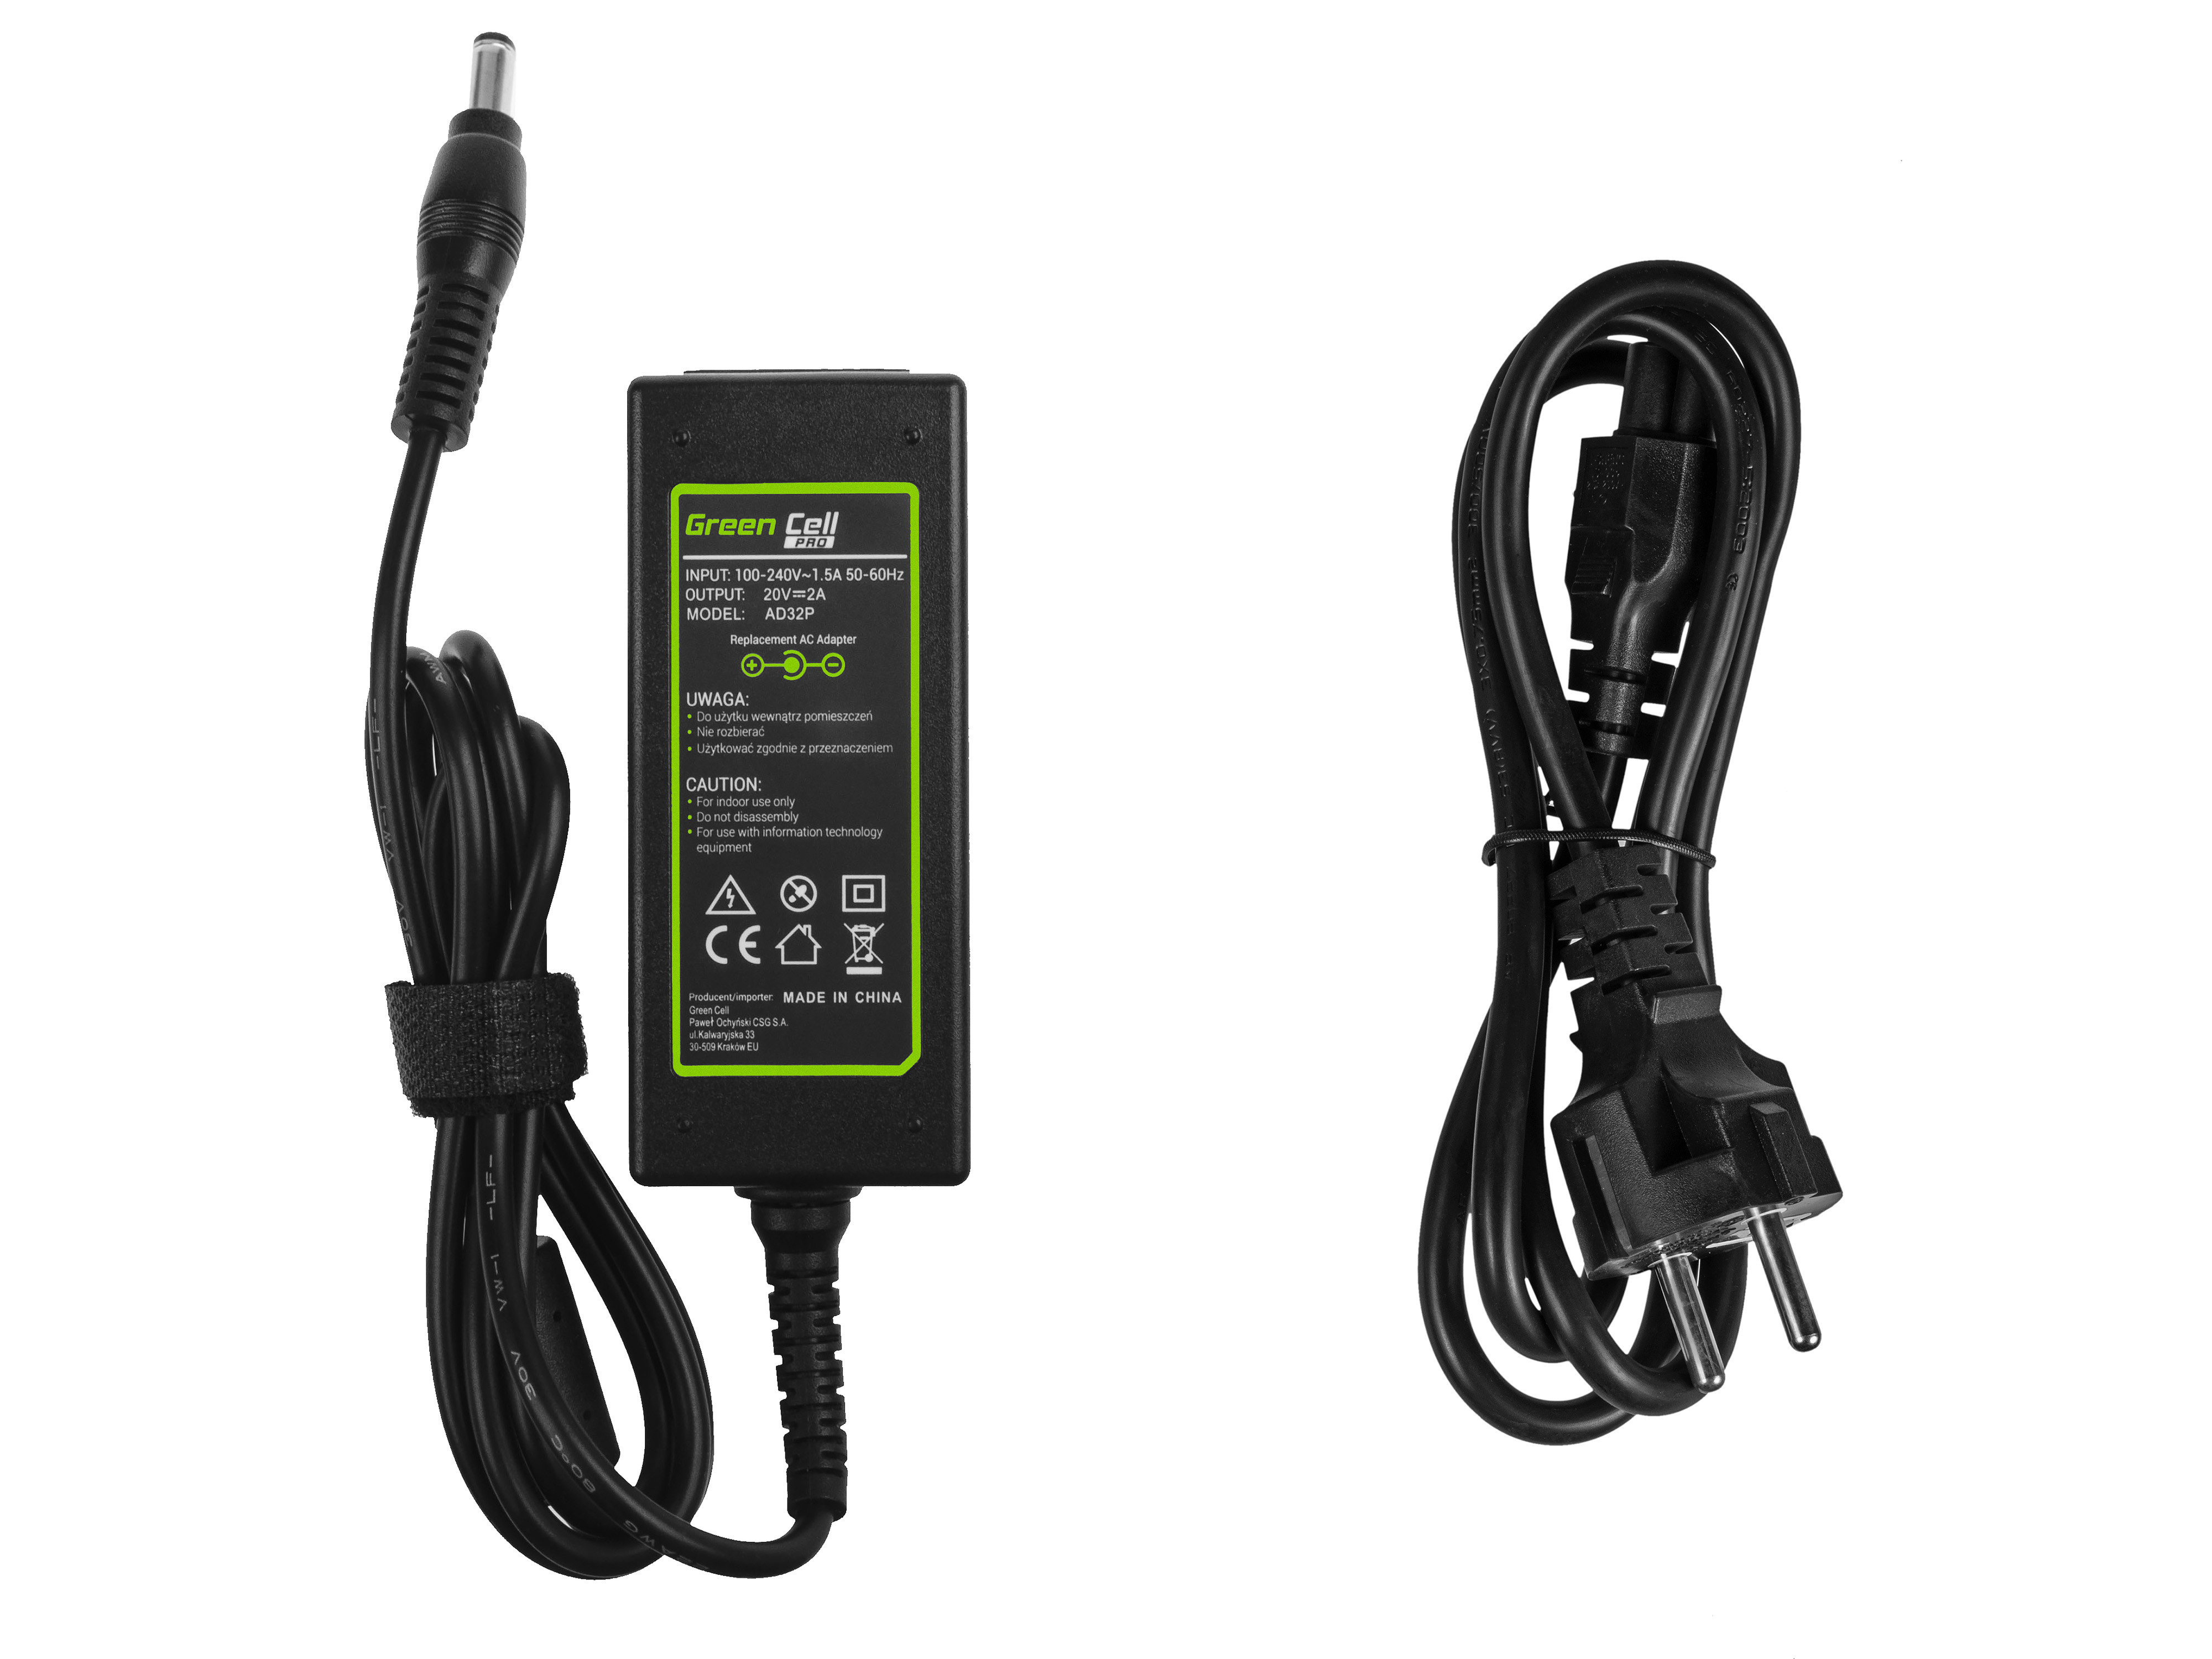 Green Cell PRO Charger  AC Adapter for Lenovo IdeaPad N585 S10 S10-2 S10-3 S10e S100 S200 S300 S400 S405 U310 20V 2A 40W